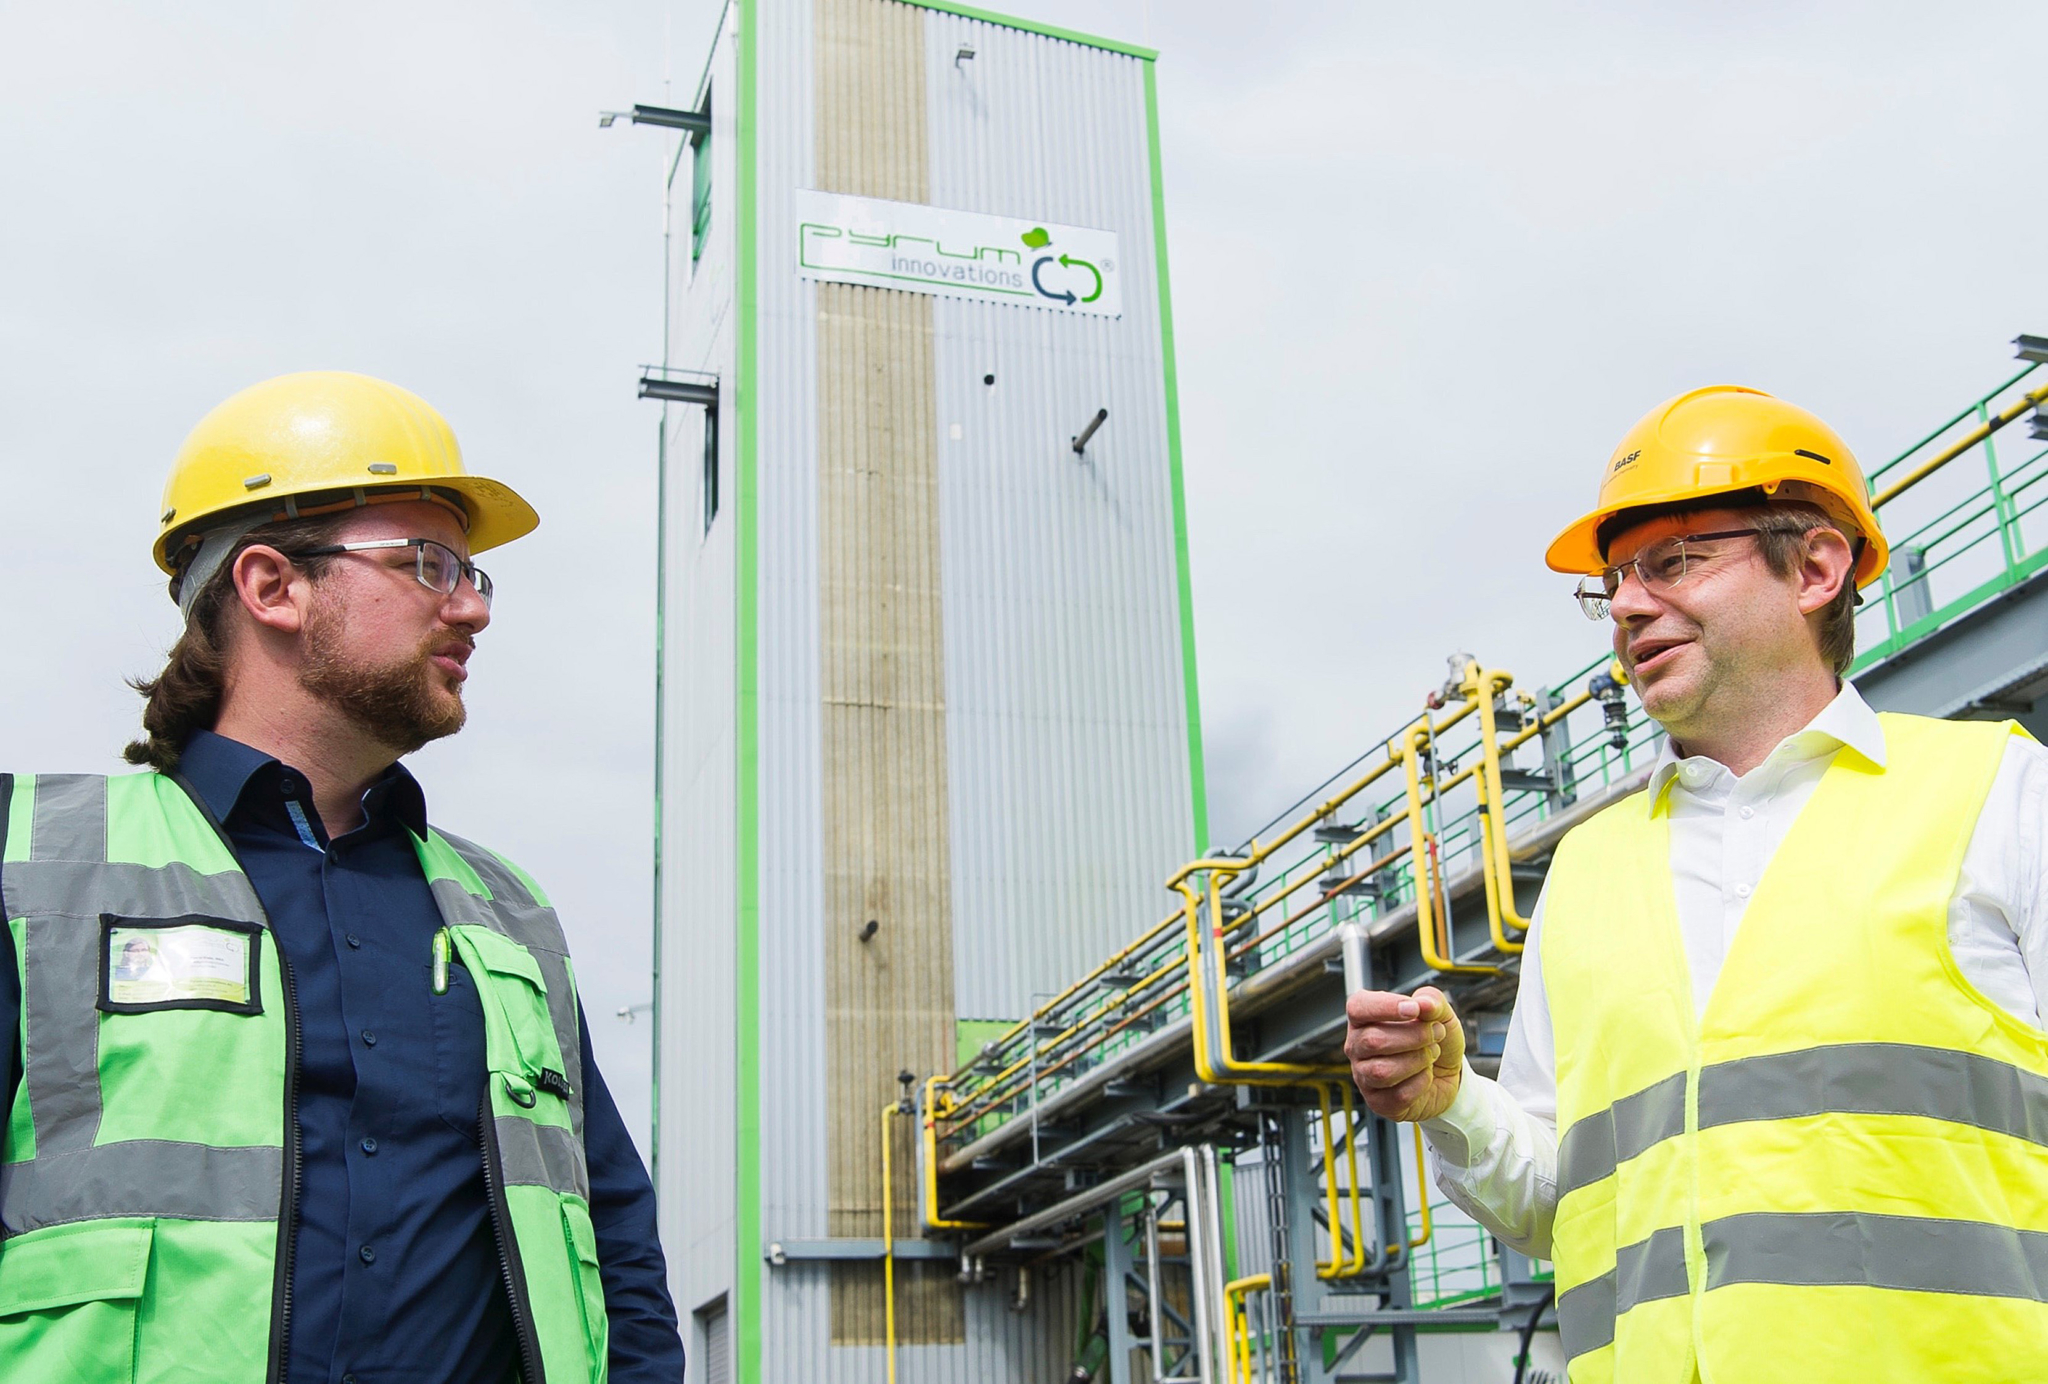 BASF invests 16 million euros into Pyrum waste tyre oil recovery